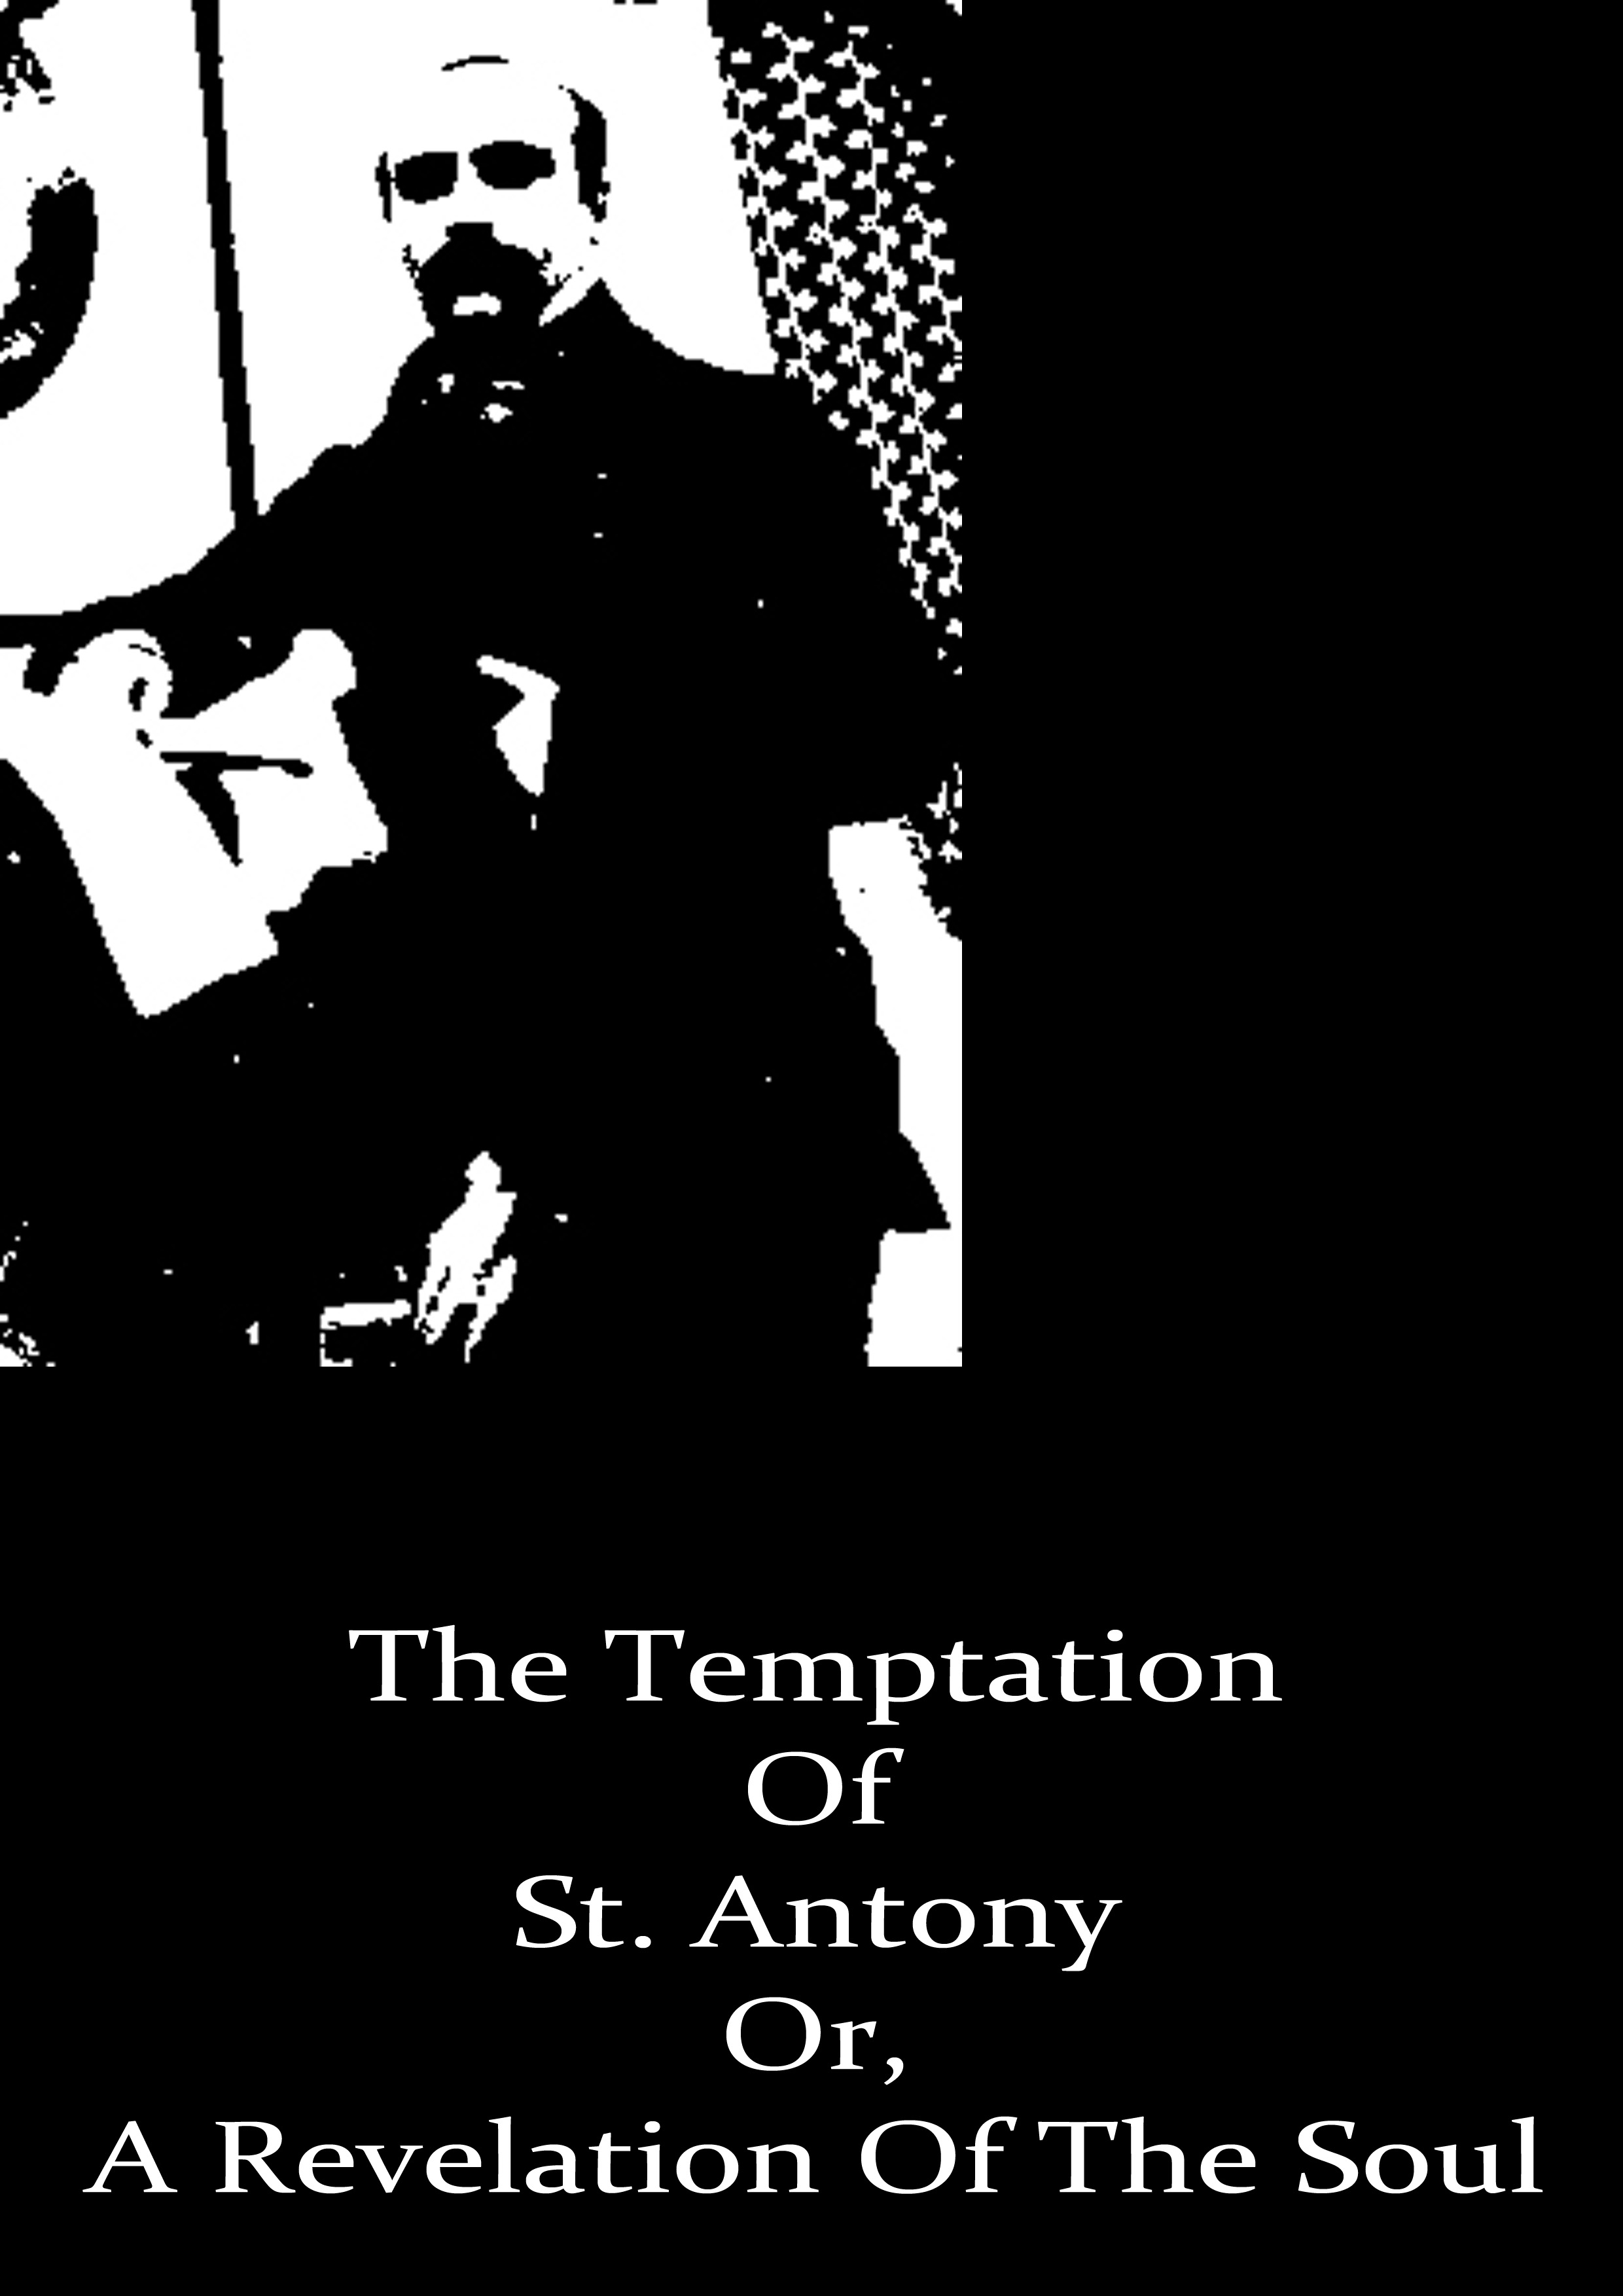 The Temptation Of St. Antony By: Gustave Flaubert